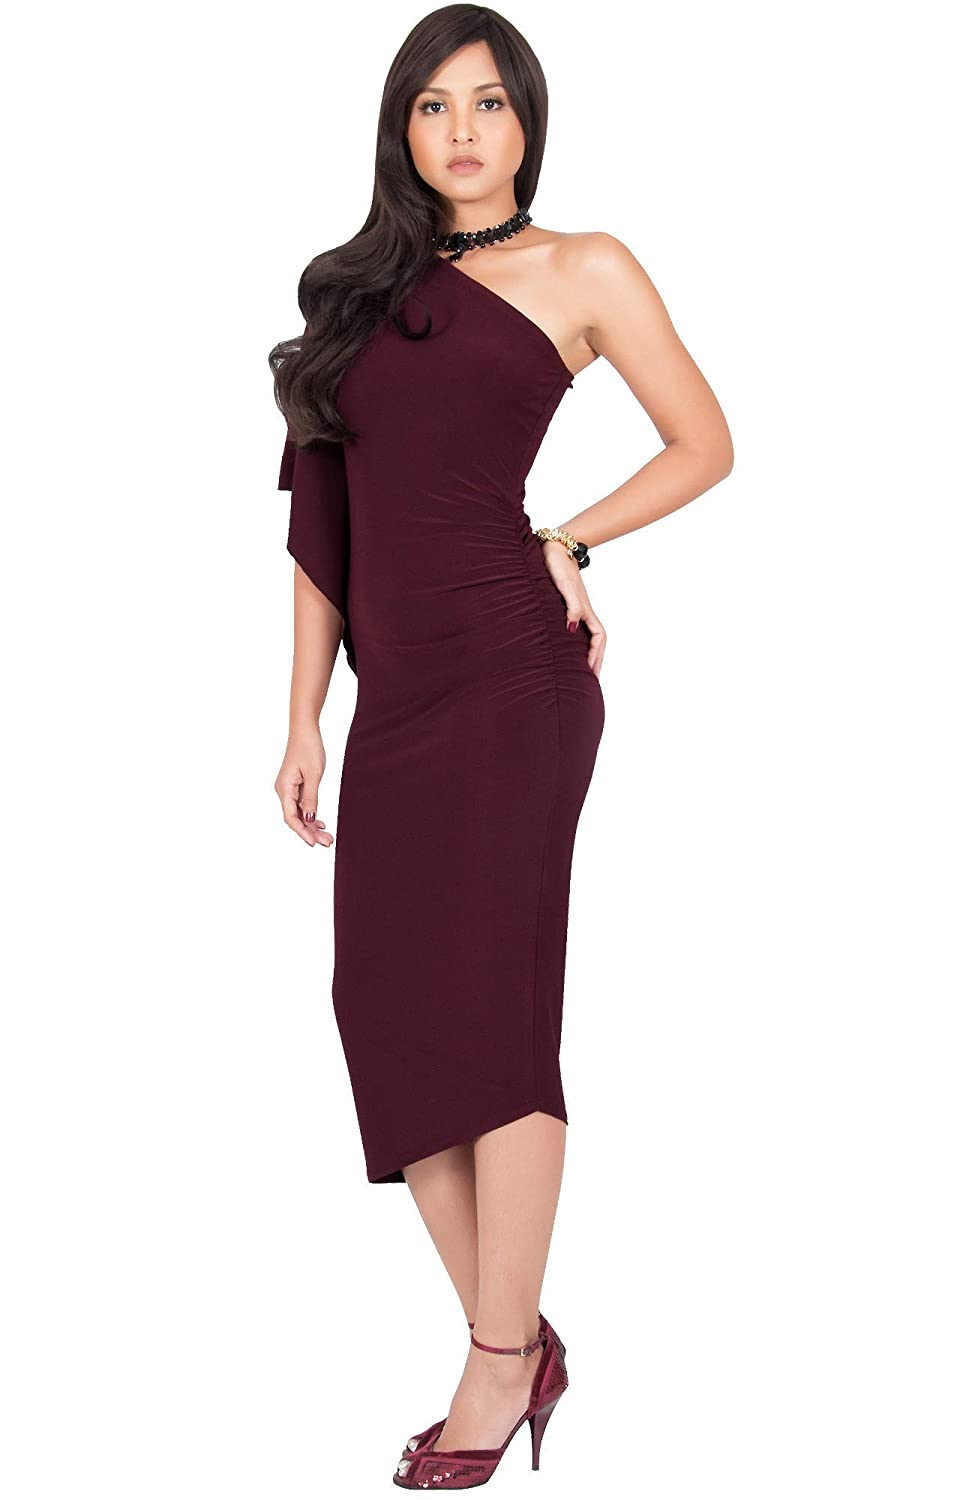 518aa6d6e6 KOH KOH Womens One Shoulder Sexy Long Semi Formal Cocktail Bridesmaid Midi  Dress at Amazon Women's Clothing store: